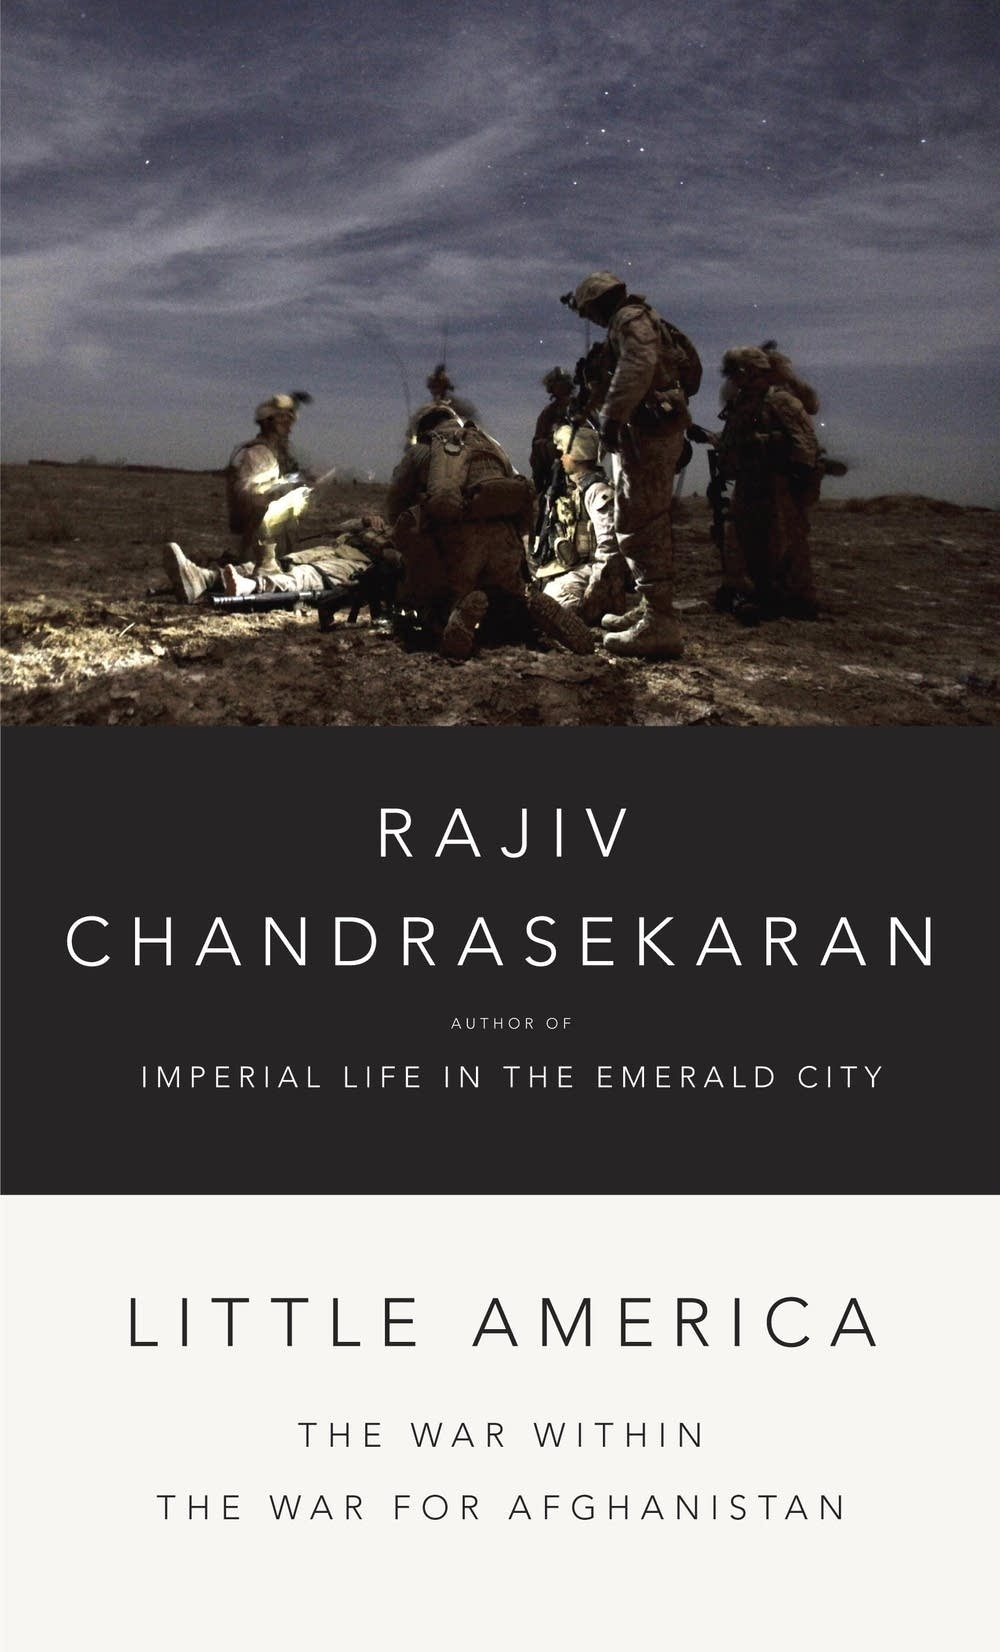 'Little America' by Rajiv Chandrasekaran